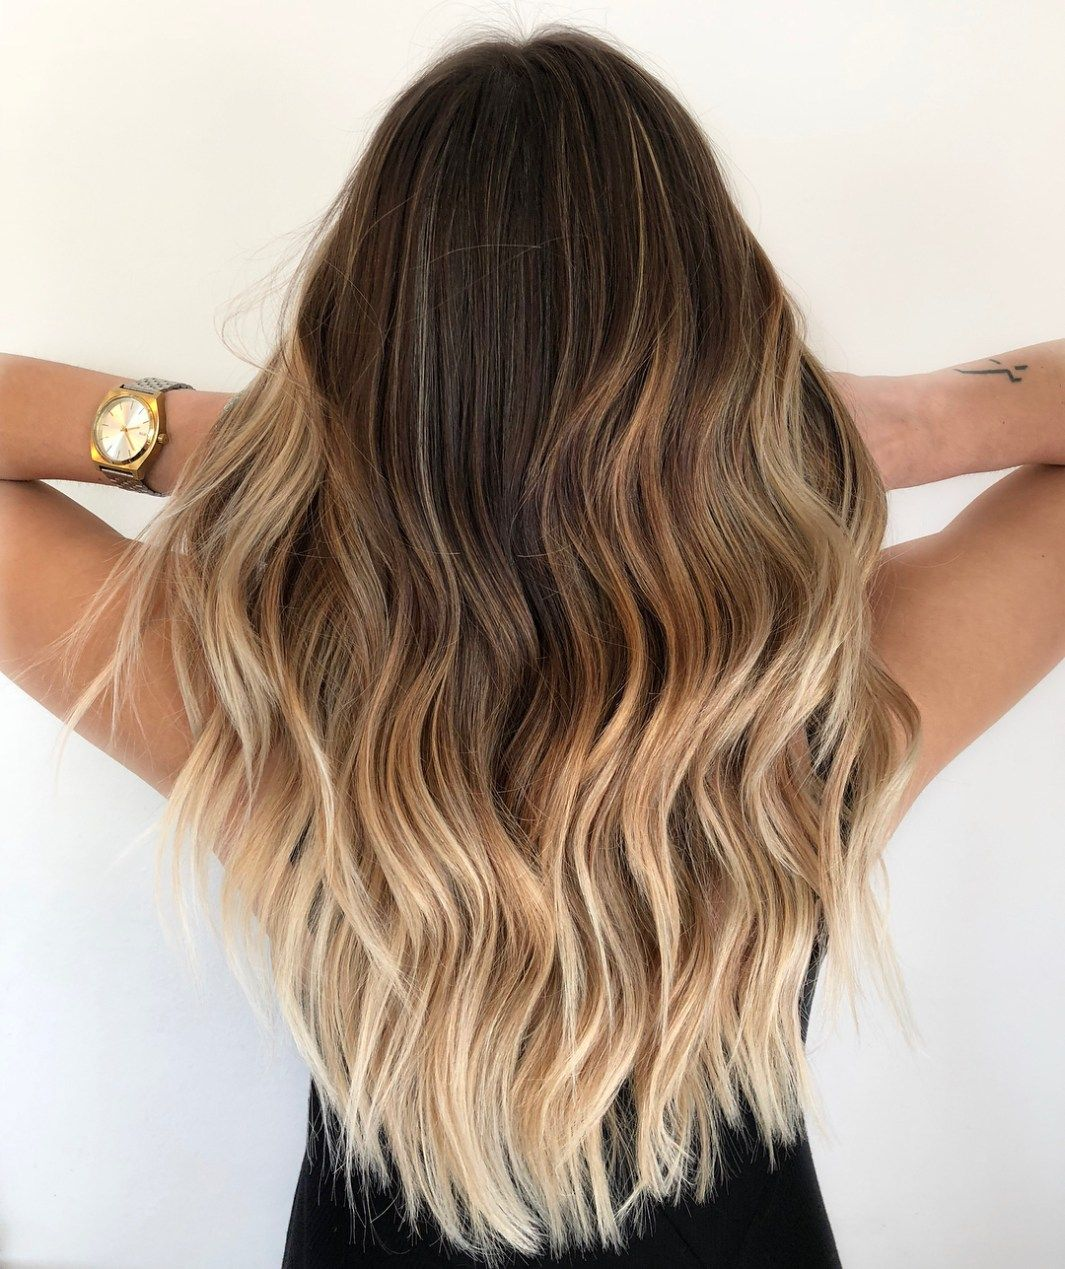 20 On Trend Brown To Blonde Balayage Looks That Will Make You Jealous In 2020 Blonde Balayage Brown To Blonde Balayage Balayage Straight Hair